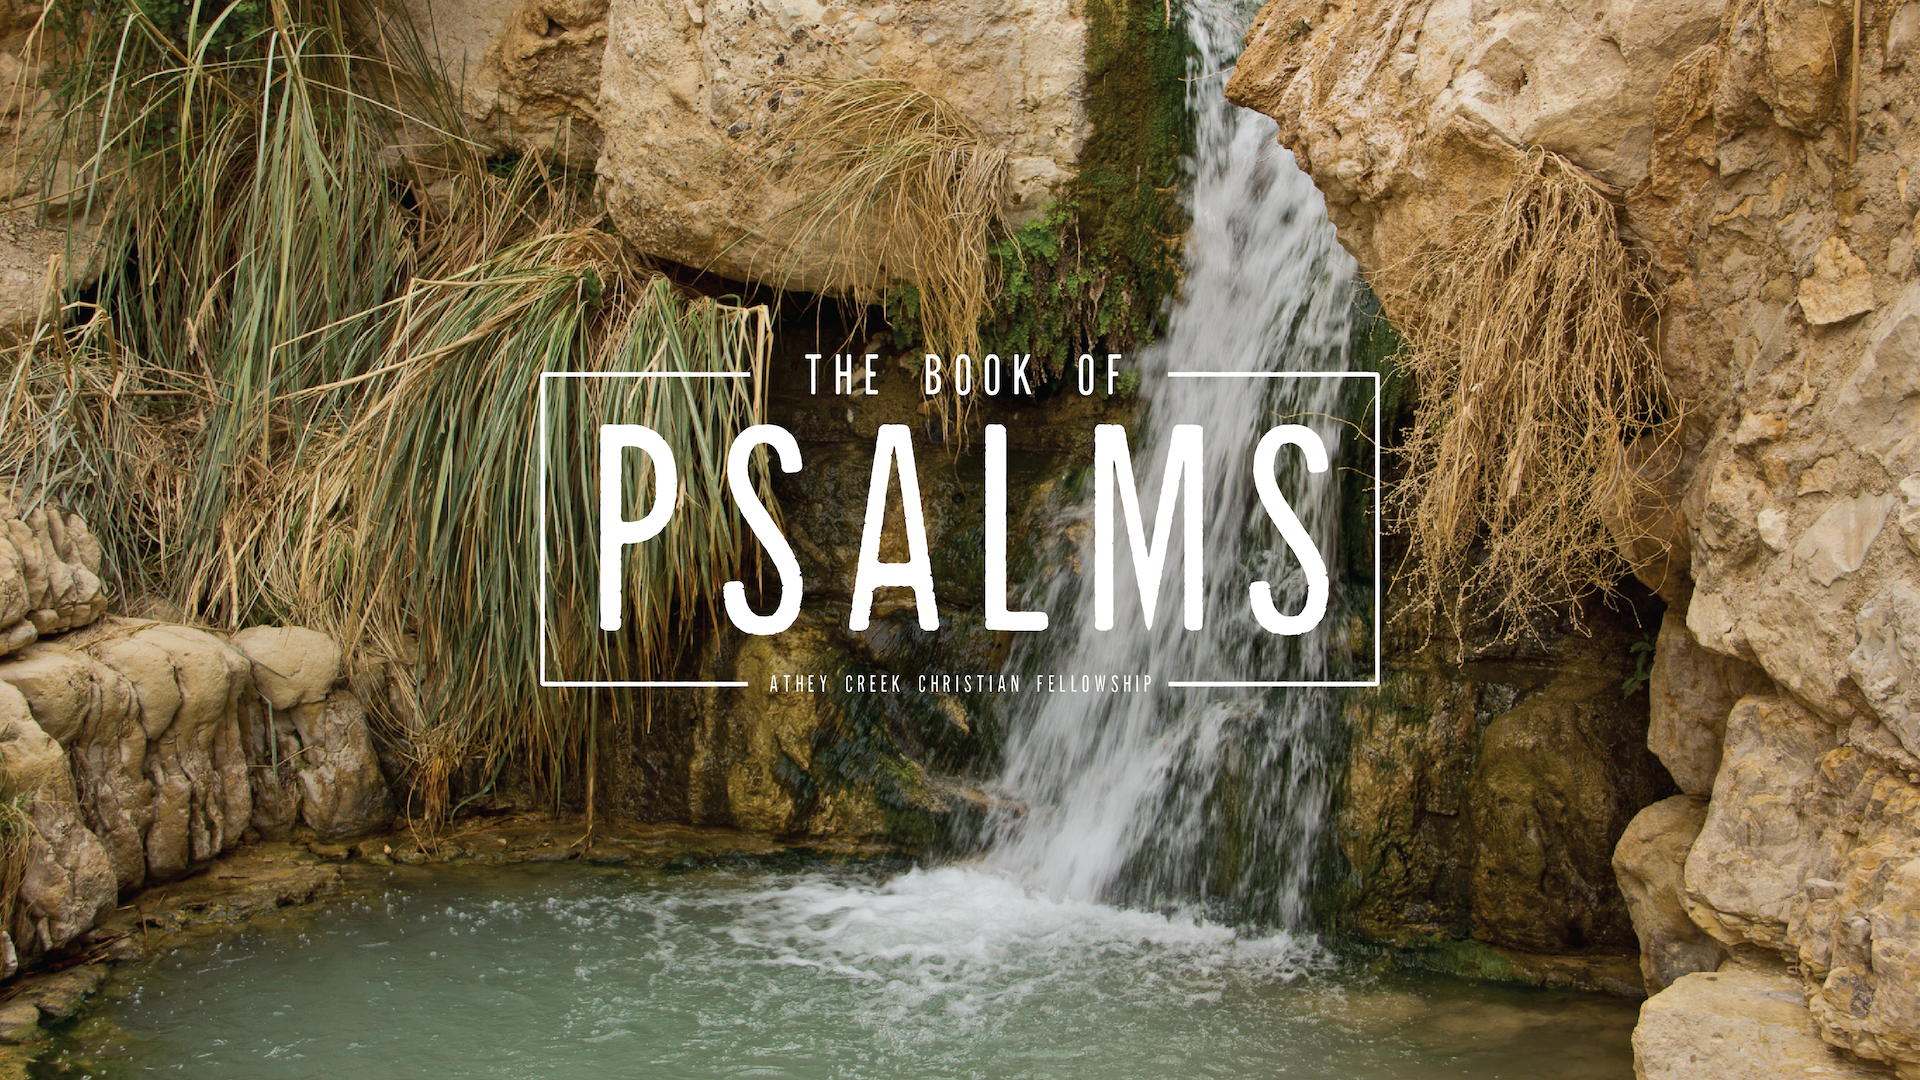 Poster forThrough the Bible (Psalms 69)